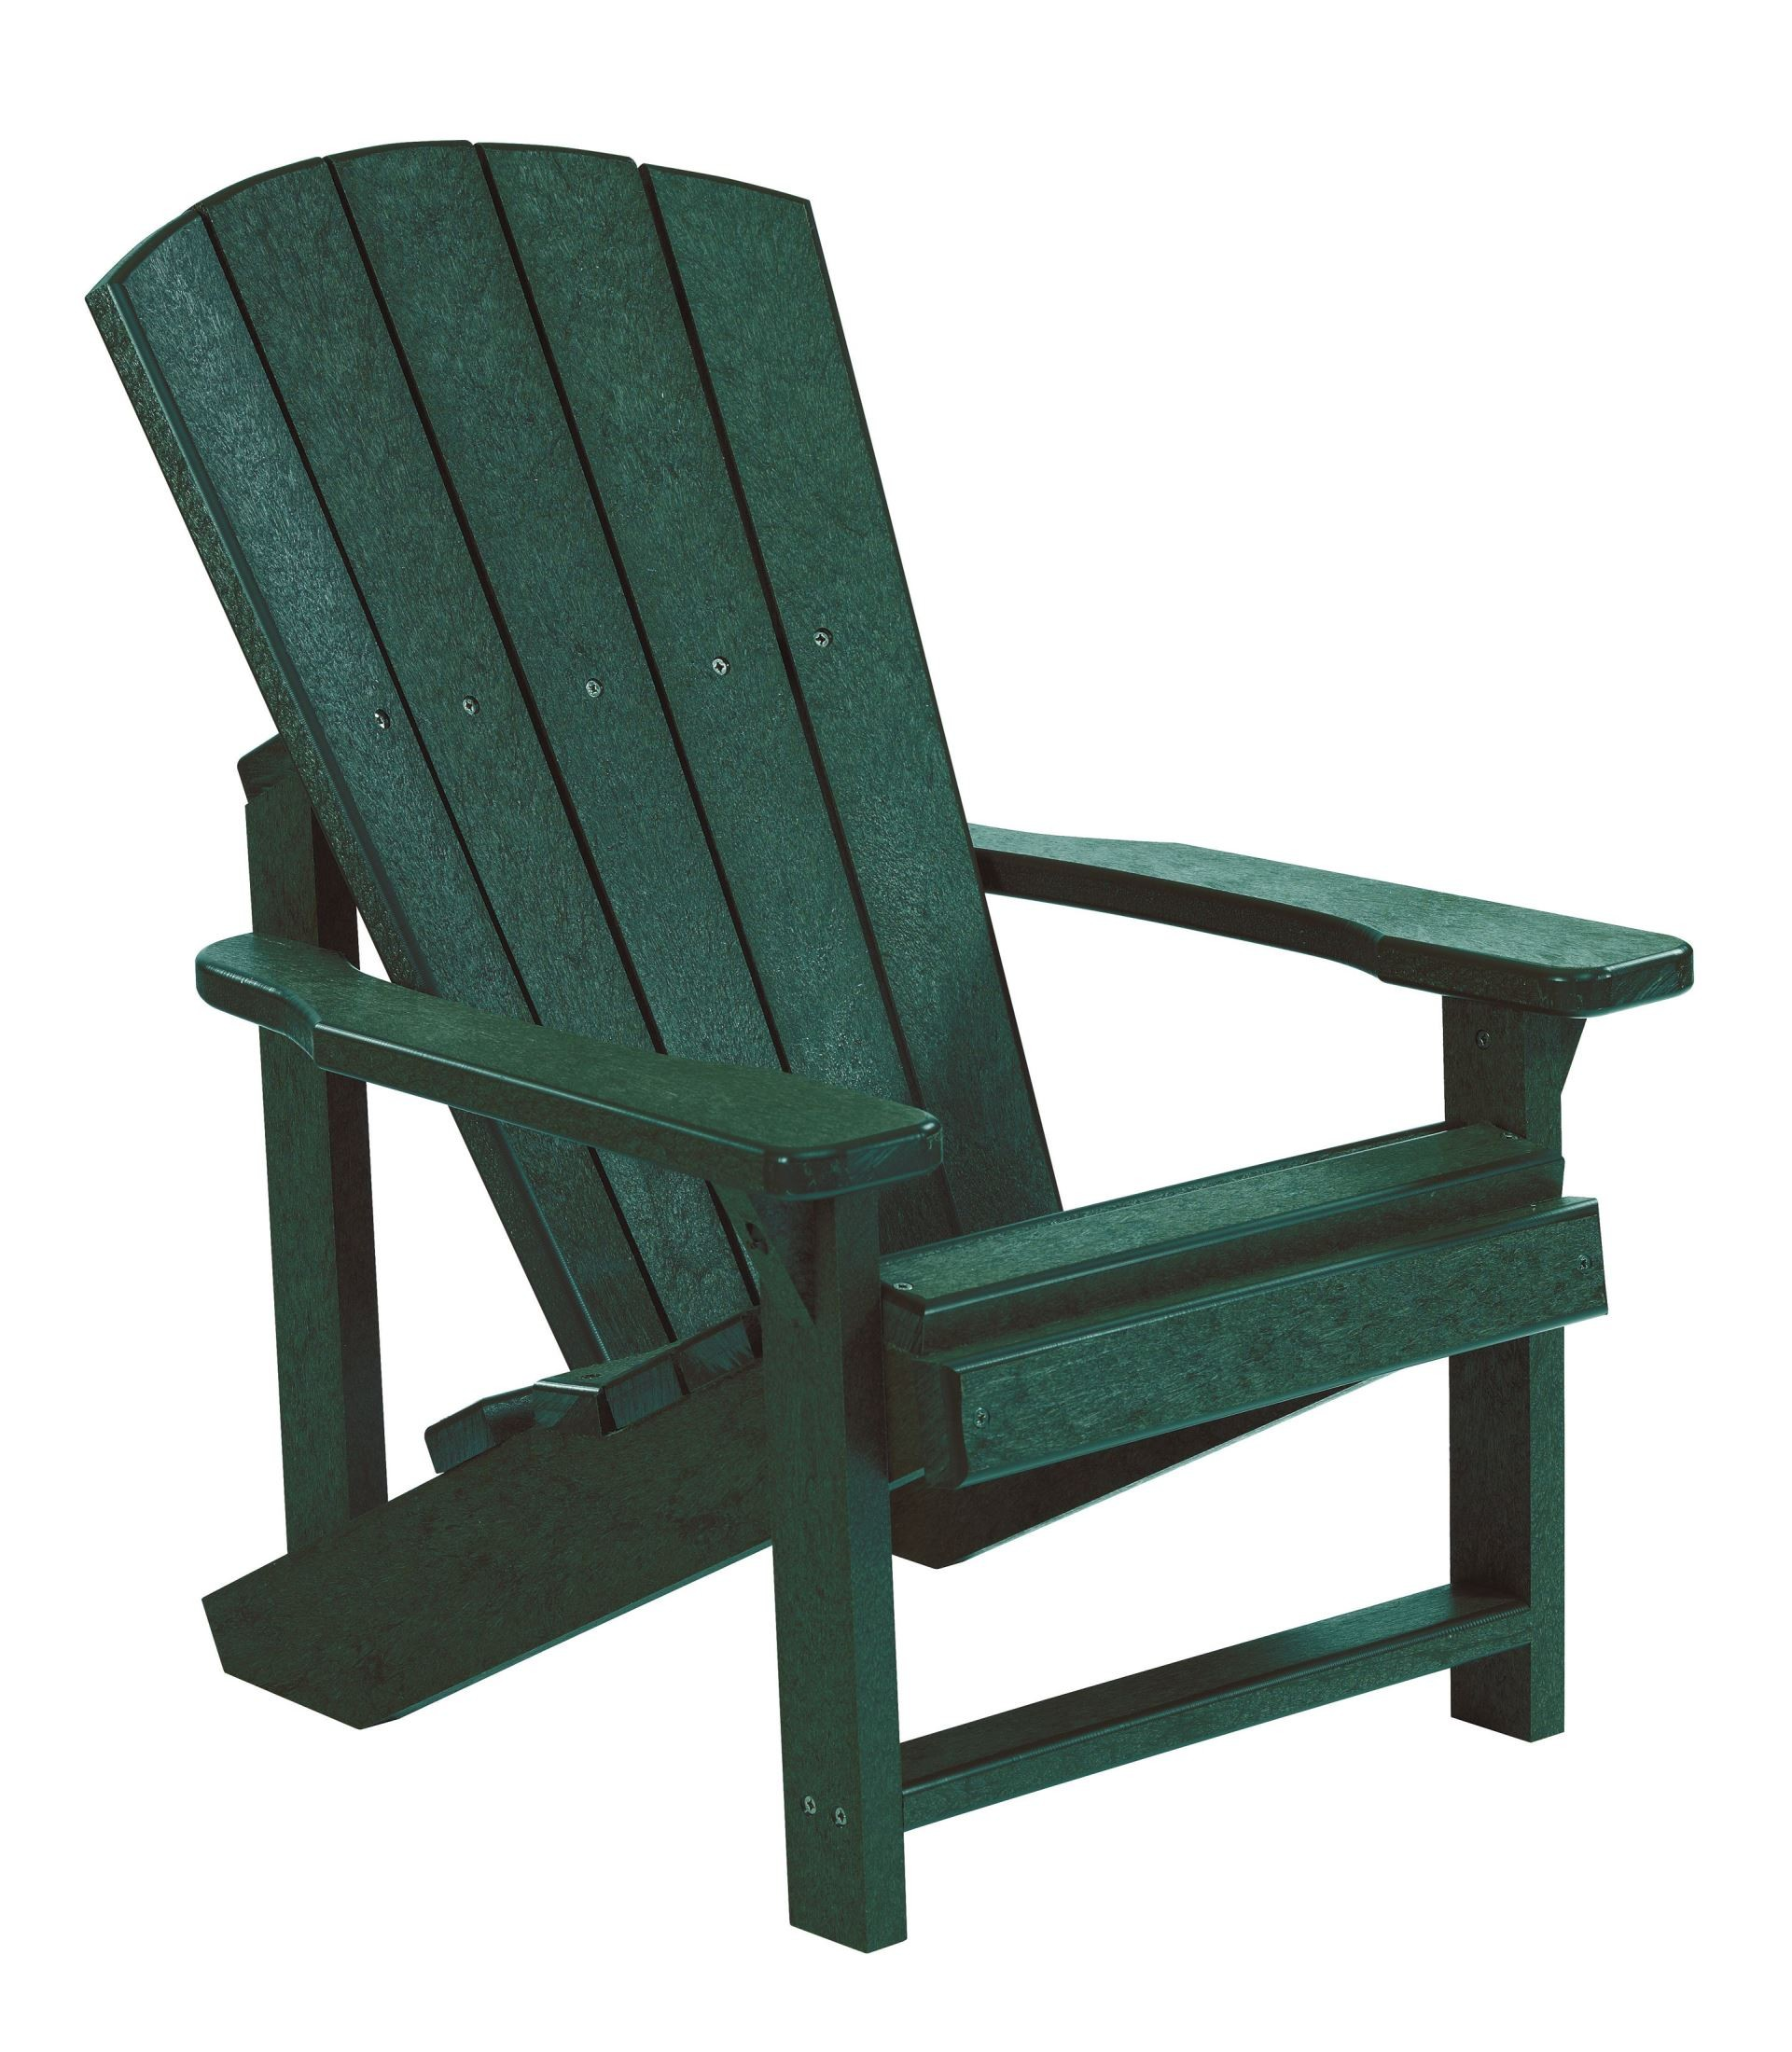 generations green kids adirondack chair from cr plastic c08 06 coleman furniture. Black Bedroom Furniture Sets. Home Design Ideas